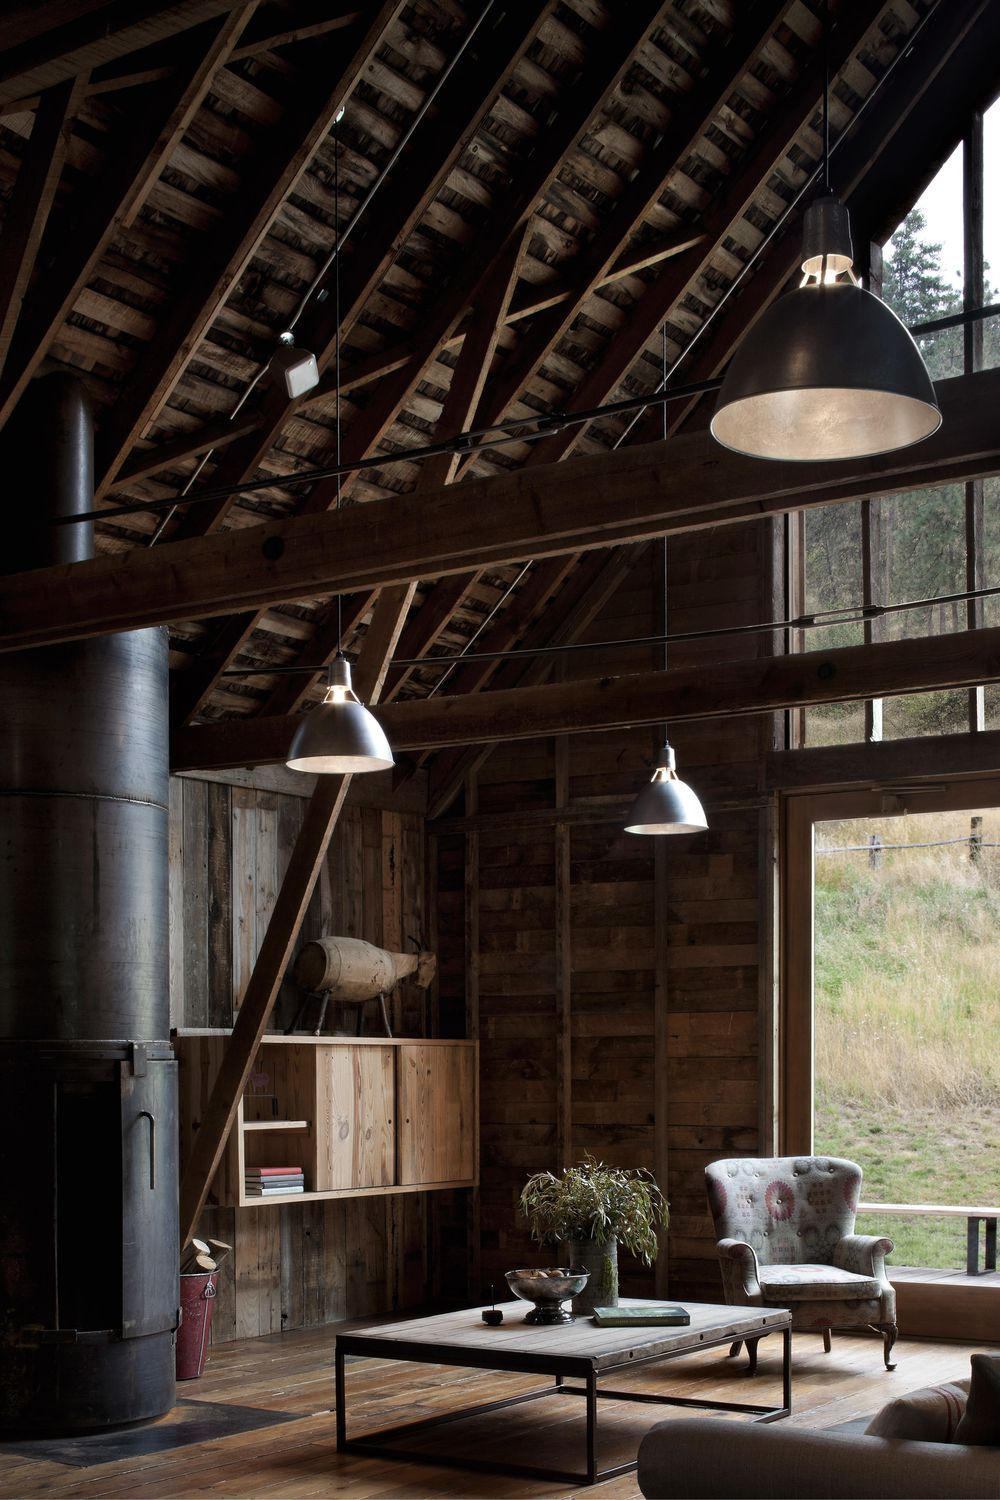 Barn transformed becomes gorgeous rustic home in